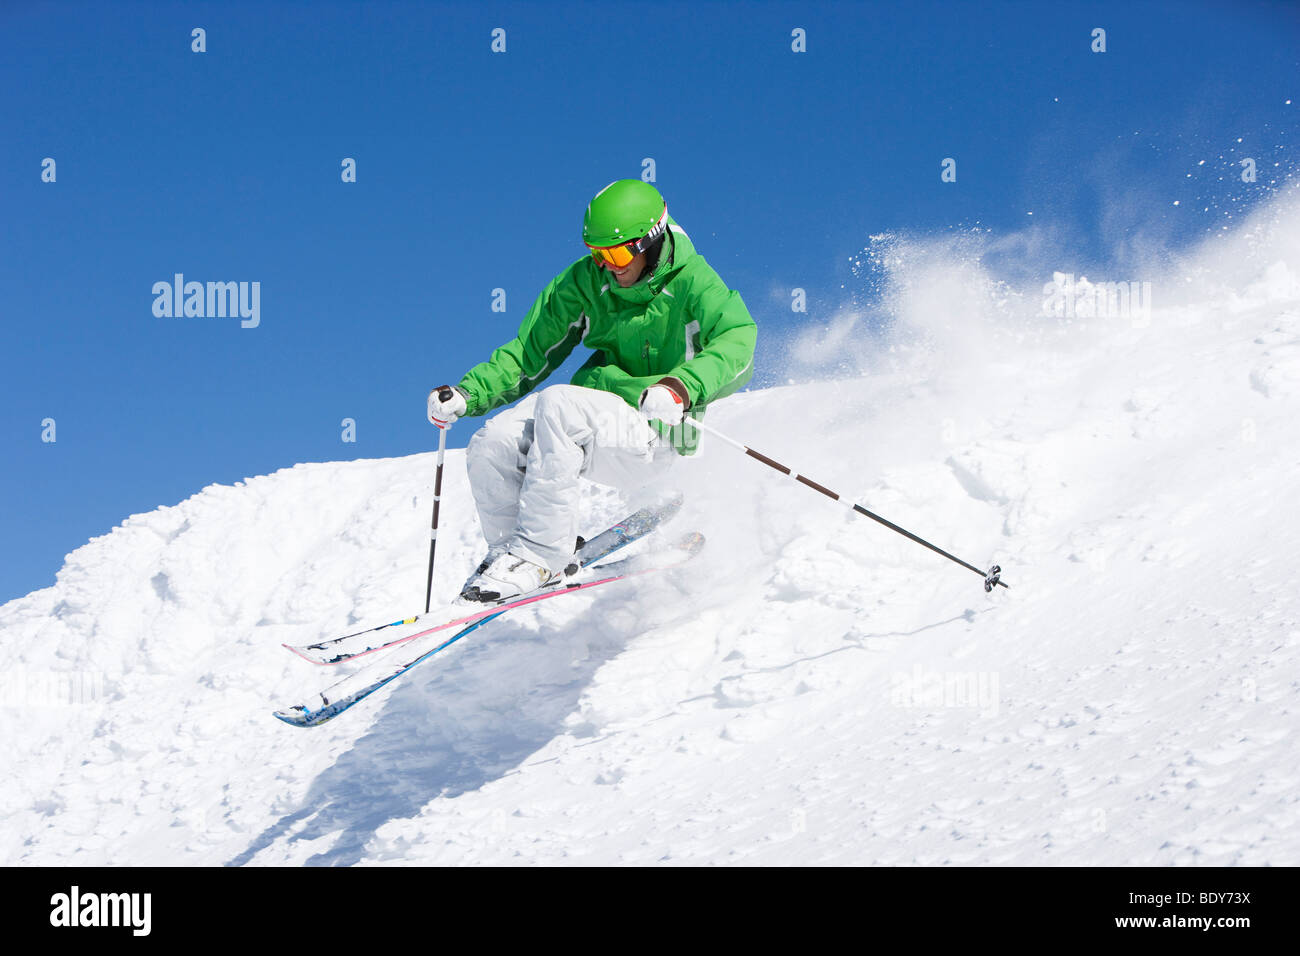 Man in green skiing off piste. - Stock Image